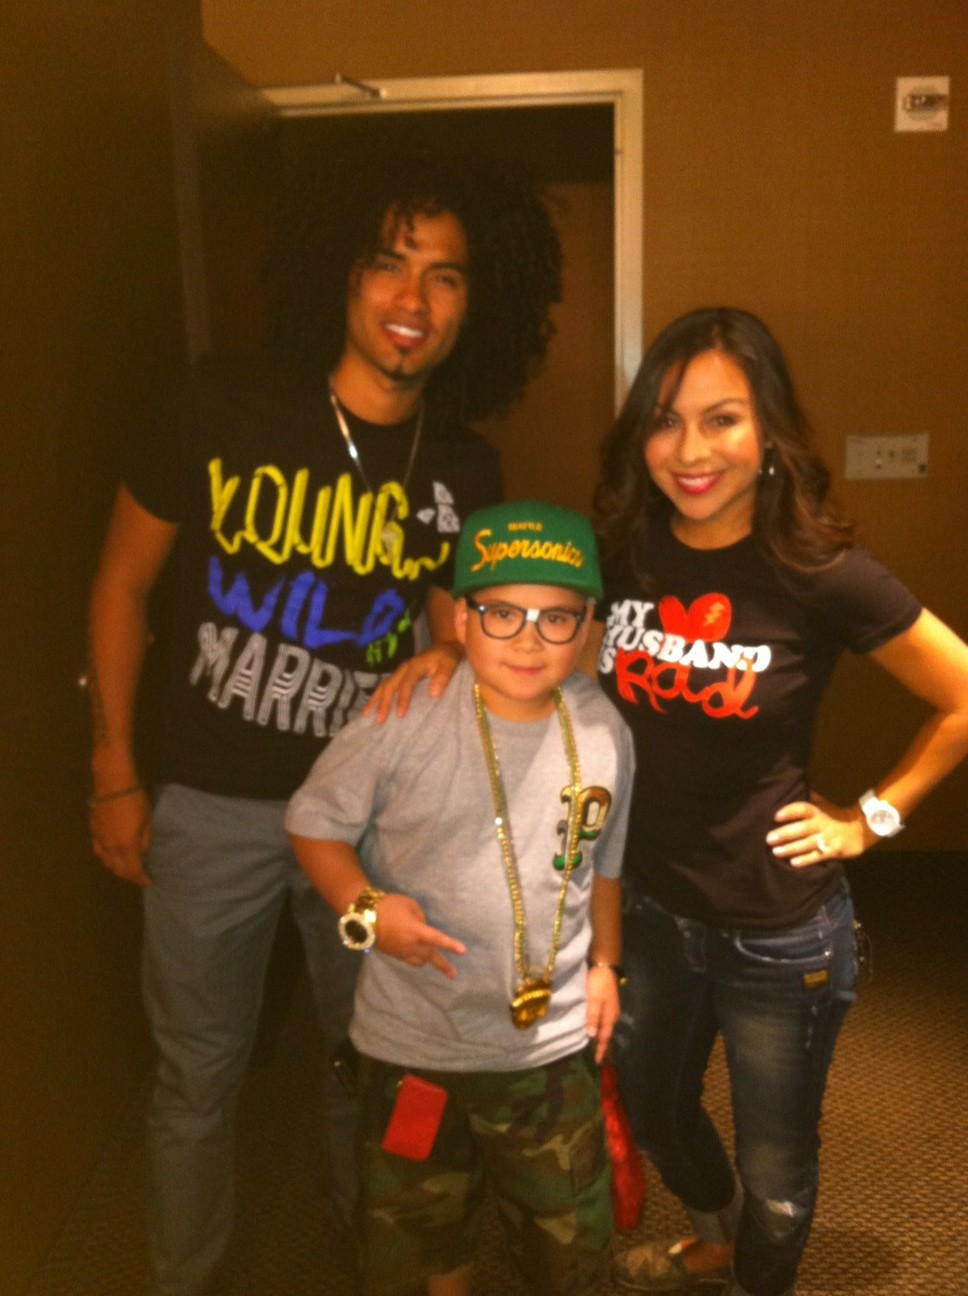 U are so fly lil man. Haha! RT @djbabychino: Me an @anjelahjohnson!! At her show at the south point!! http://t.co/M3HFbL5e